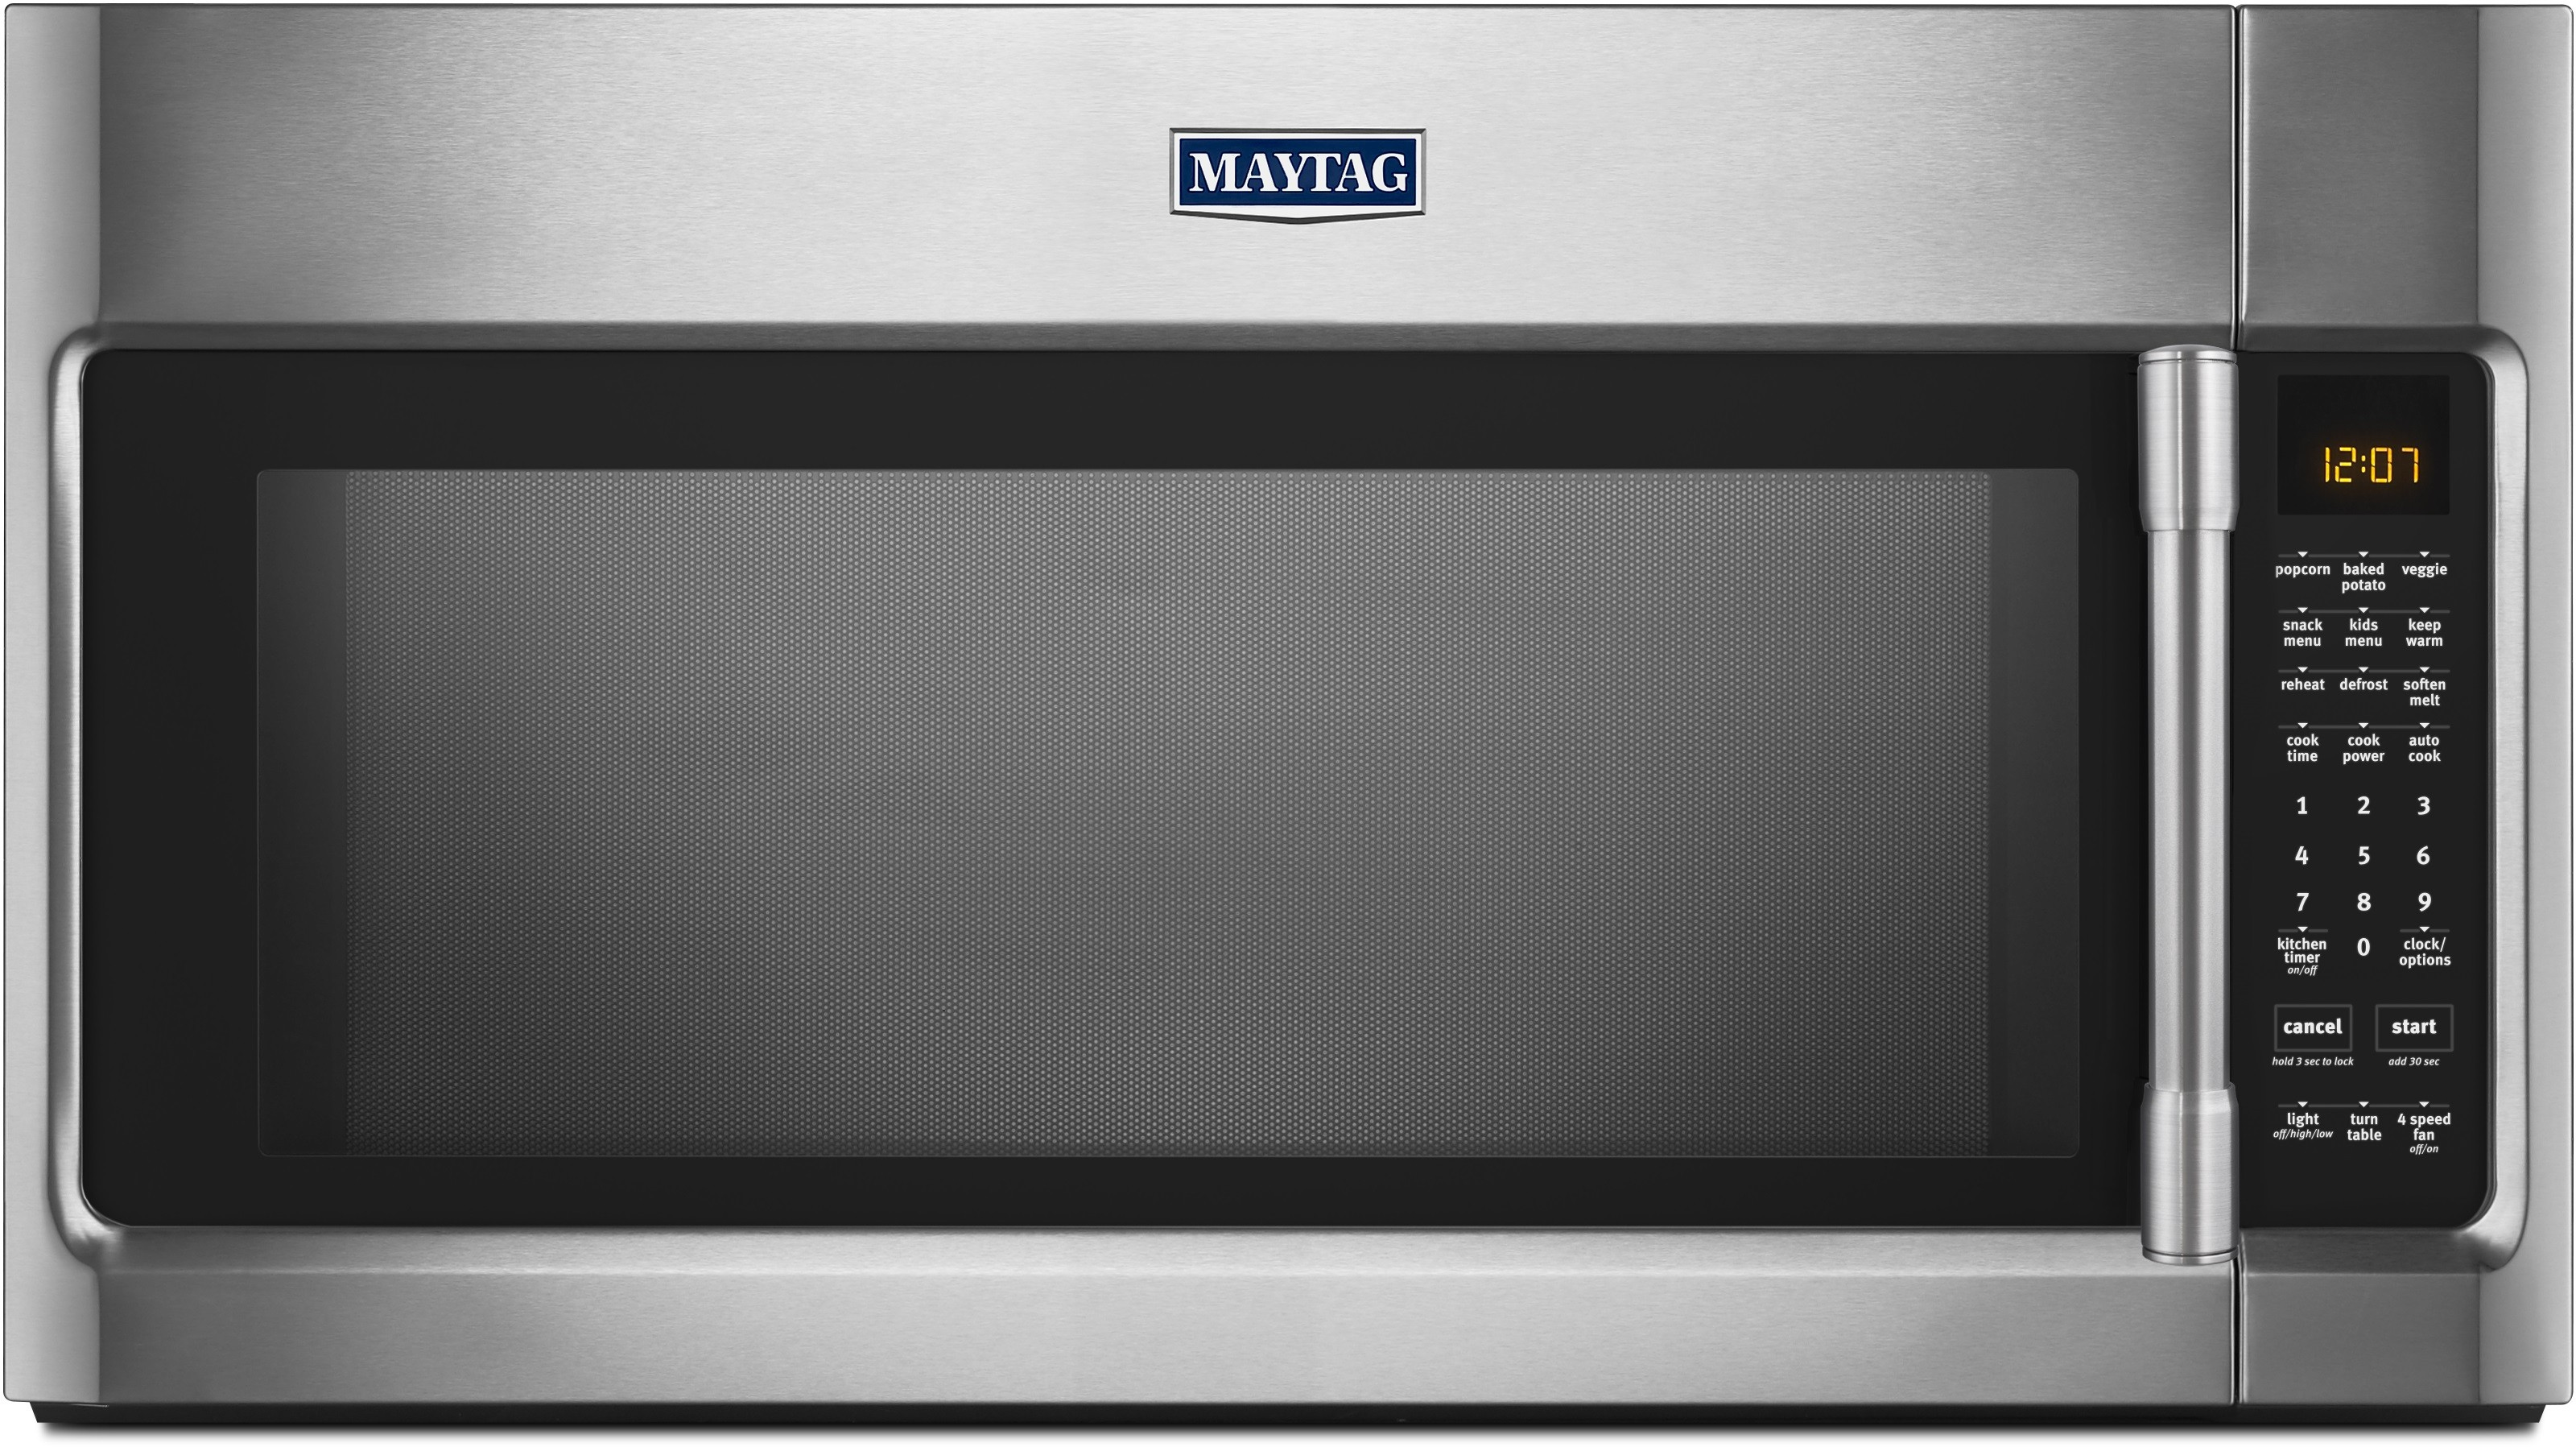 Maytag Mmv5219fz 2 1 Cu Ft Over The Range Microwave With Wideglide Tray Sensor Cooking Charcoal Odor Filter Mesh Grease Filter Electronic Touch Controls Incandescent Lighting 400 Cfm Fan And 1 000 Cooking Watts Fingerprint Resistant